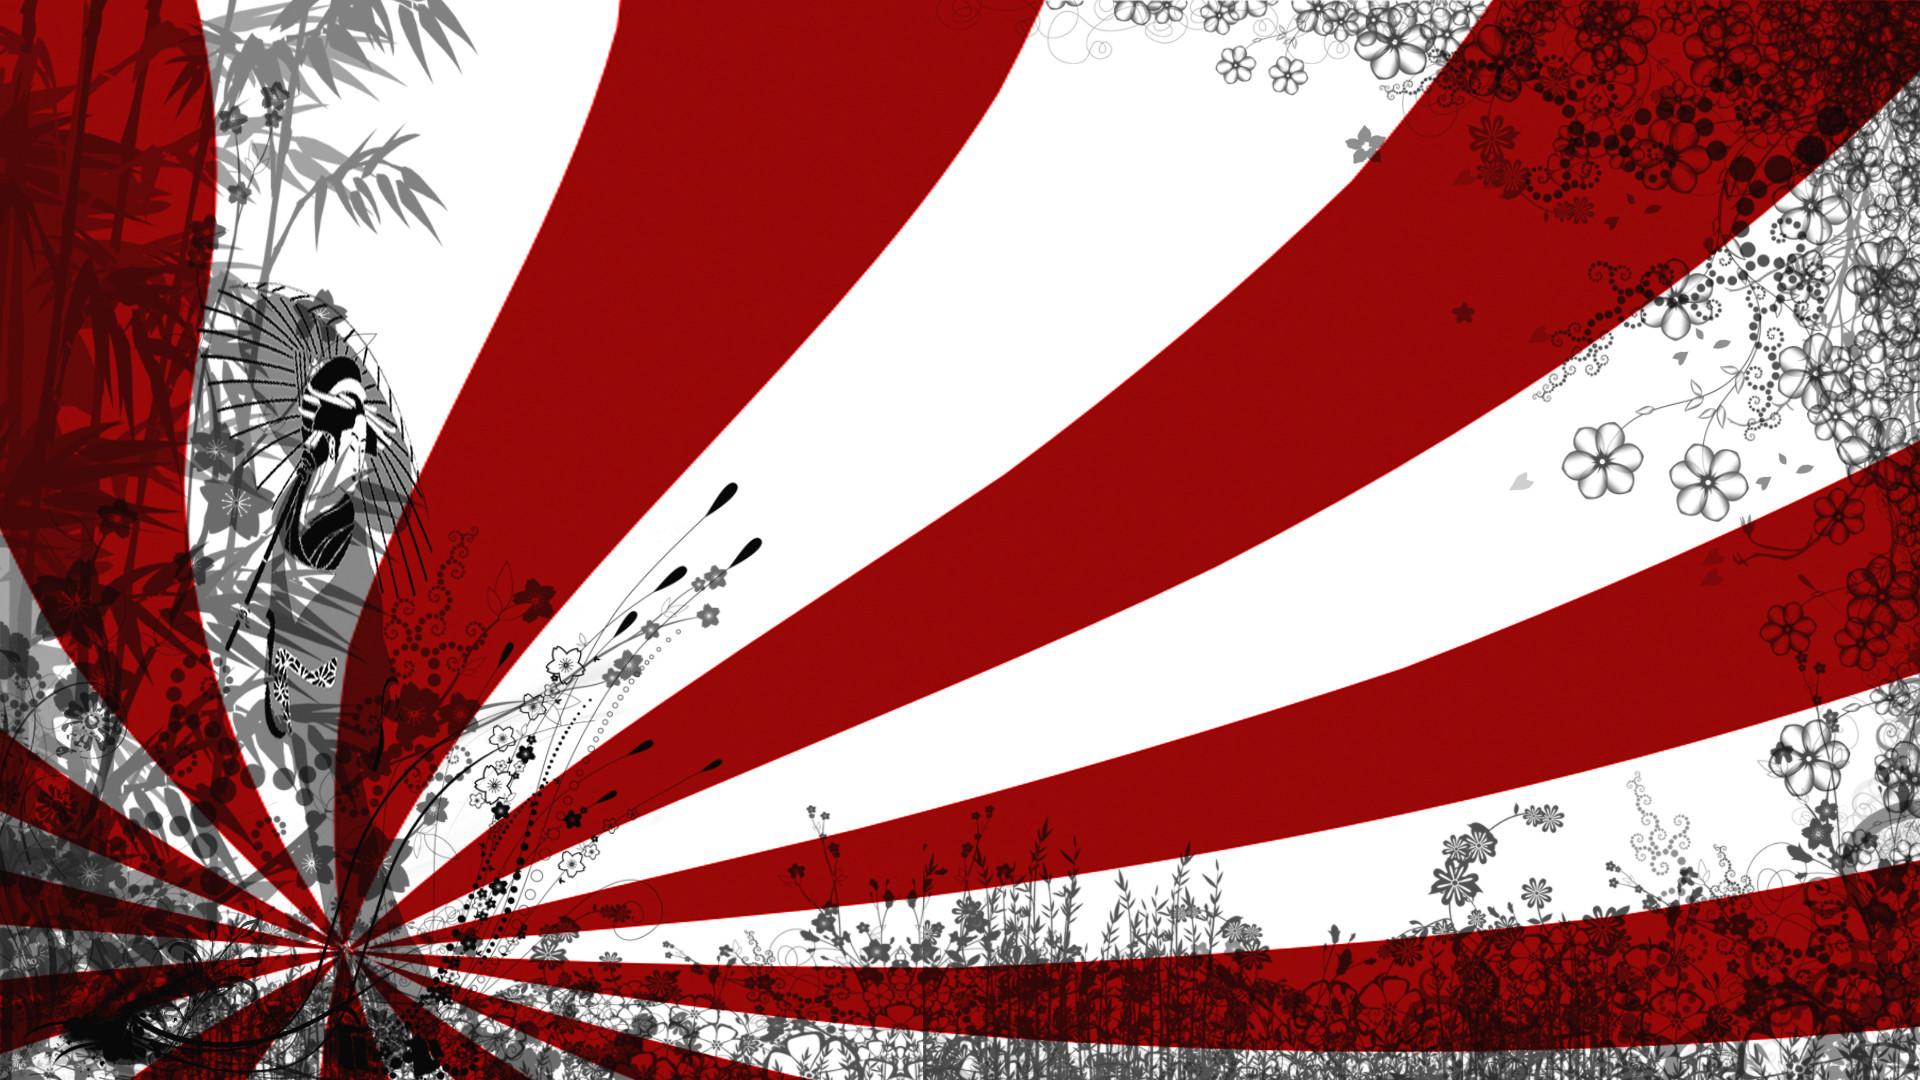 1920x1080 japan flag wallpaper free hd widescreen, 1920 x 1080 kB)